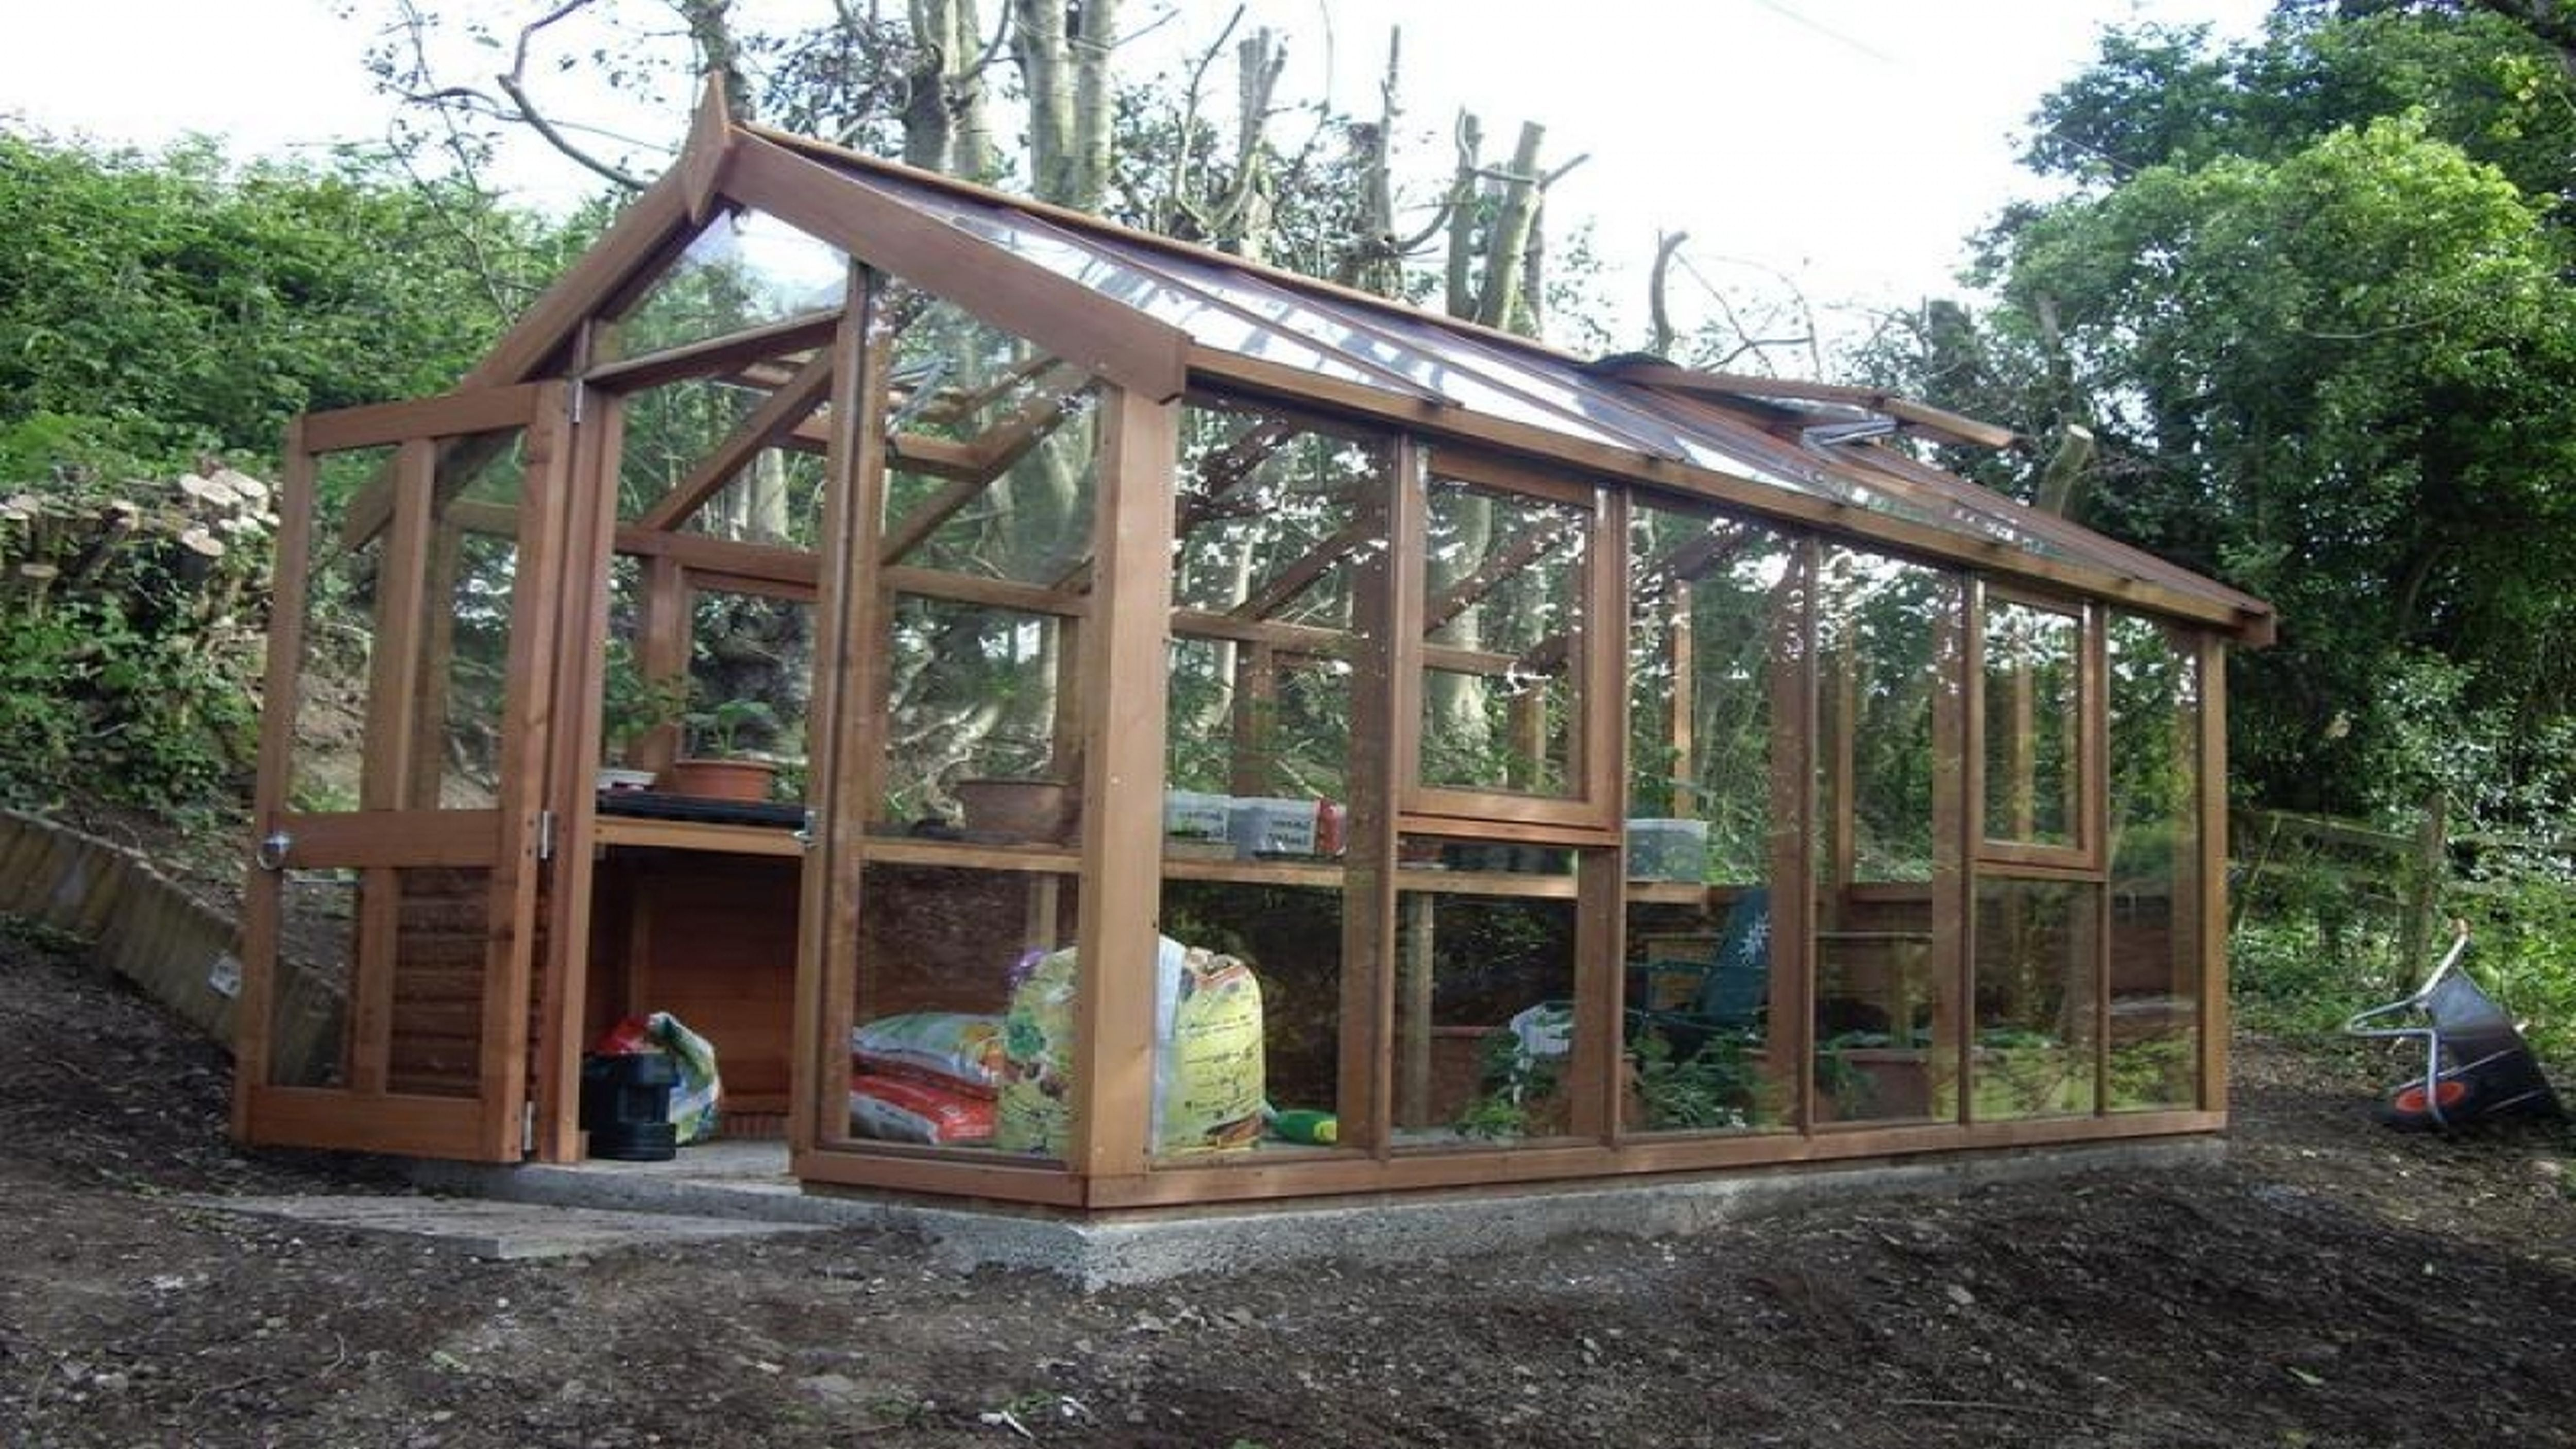 Greenhouse Design Ideas best greenhouse design ideas remodel pictures houzz Diy Rustic Industrial Furniture Alluring Japanese Style House Diy Wonderful Greenhouse Plans Marvelous